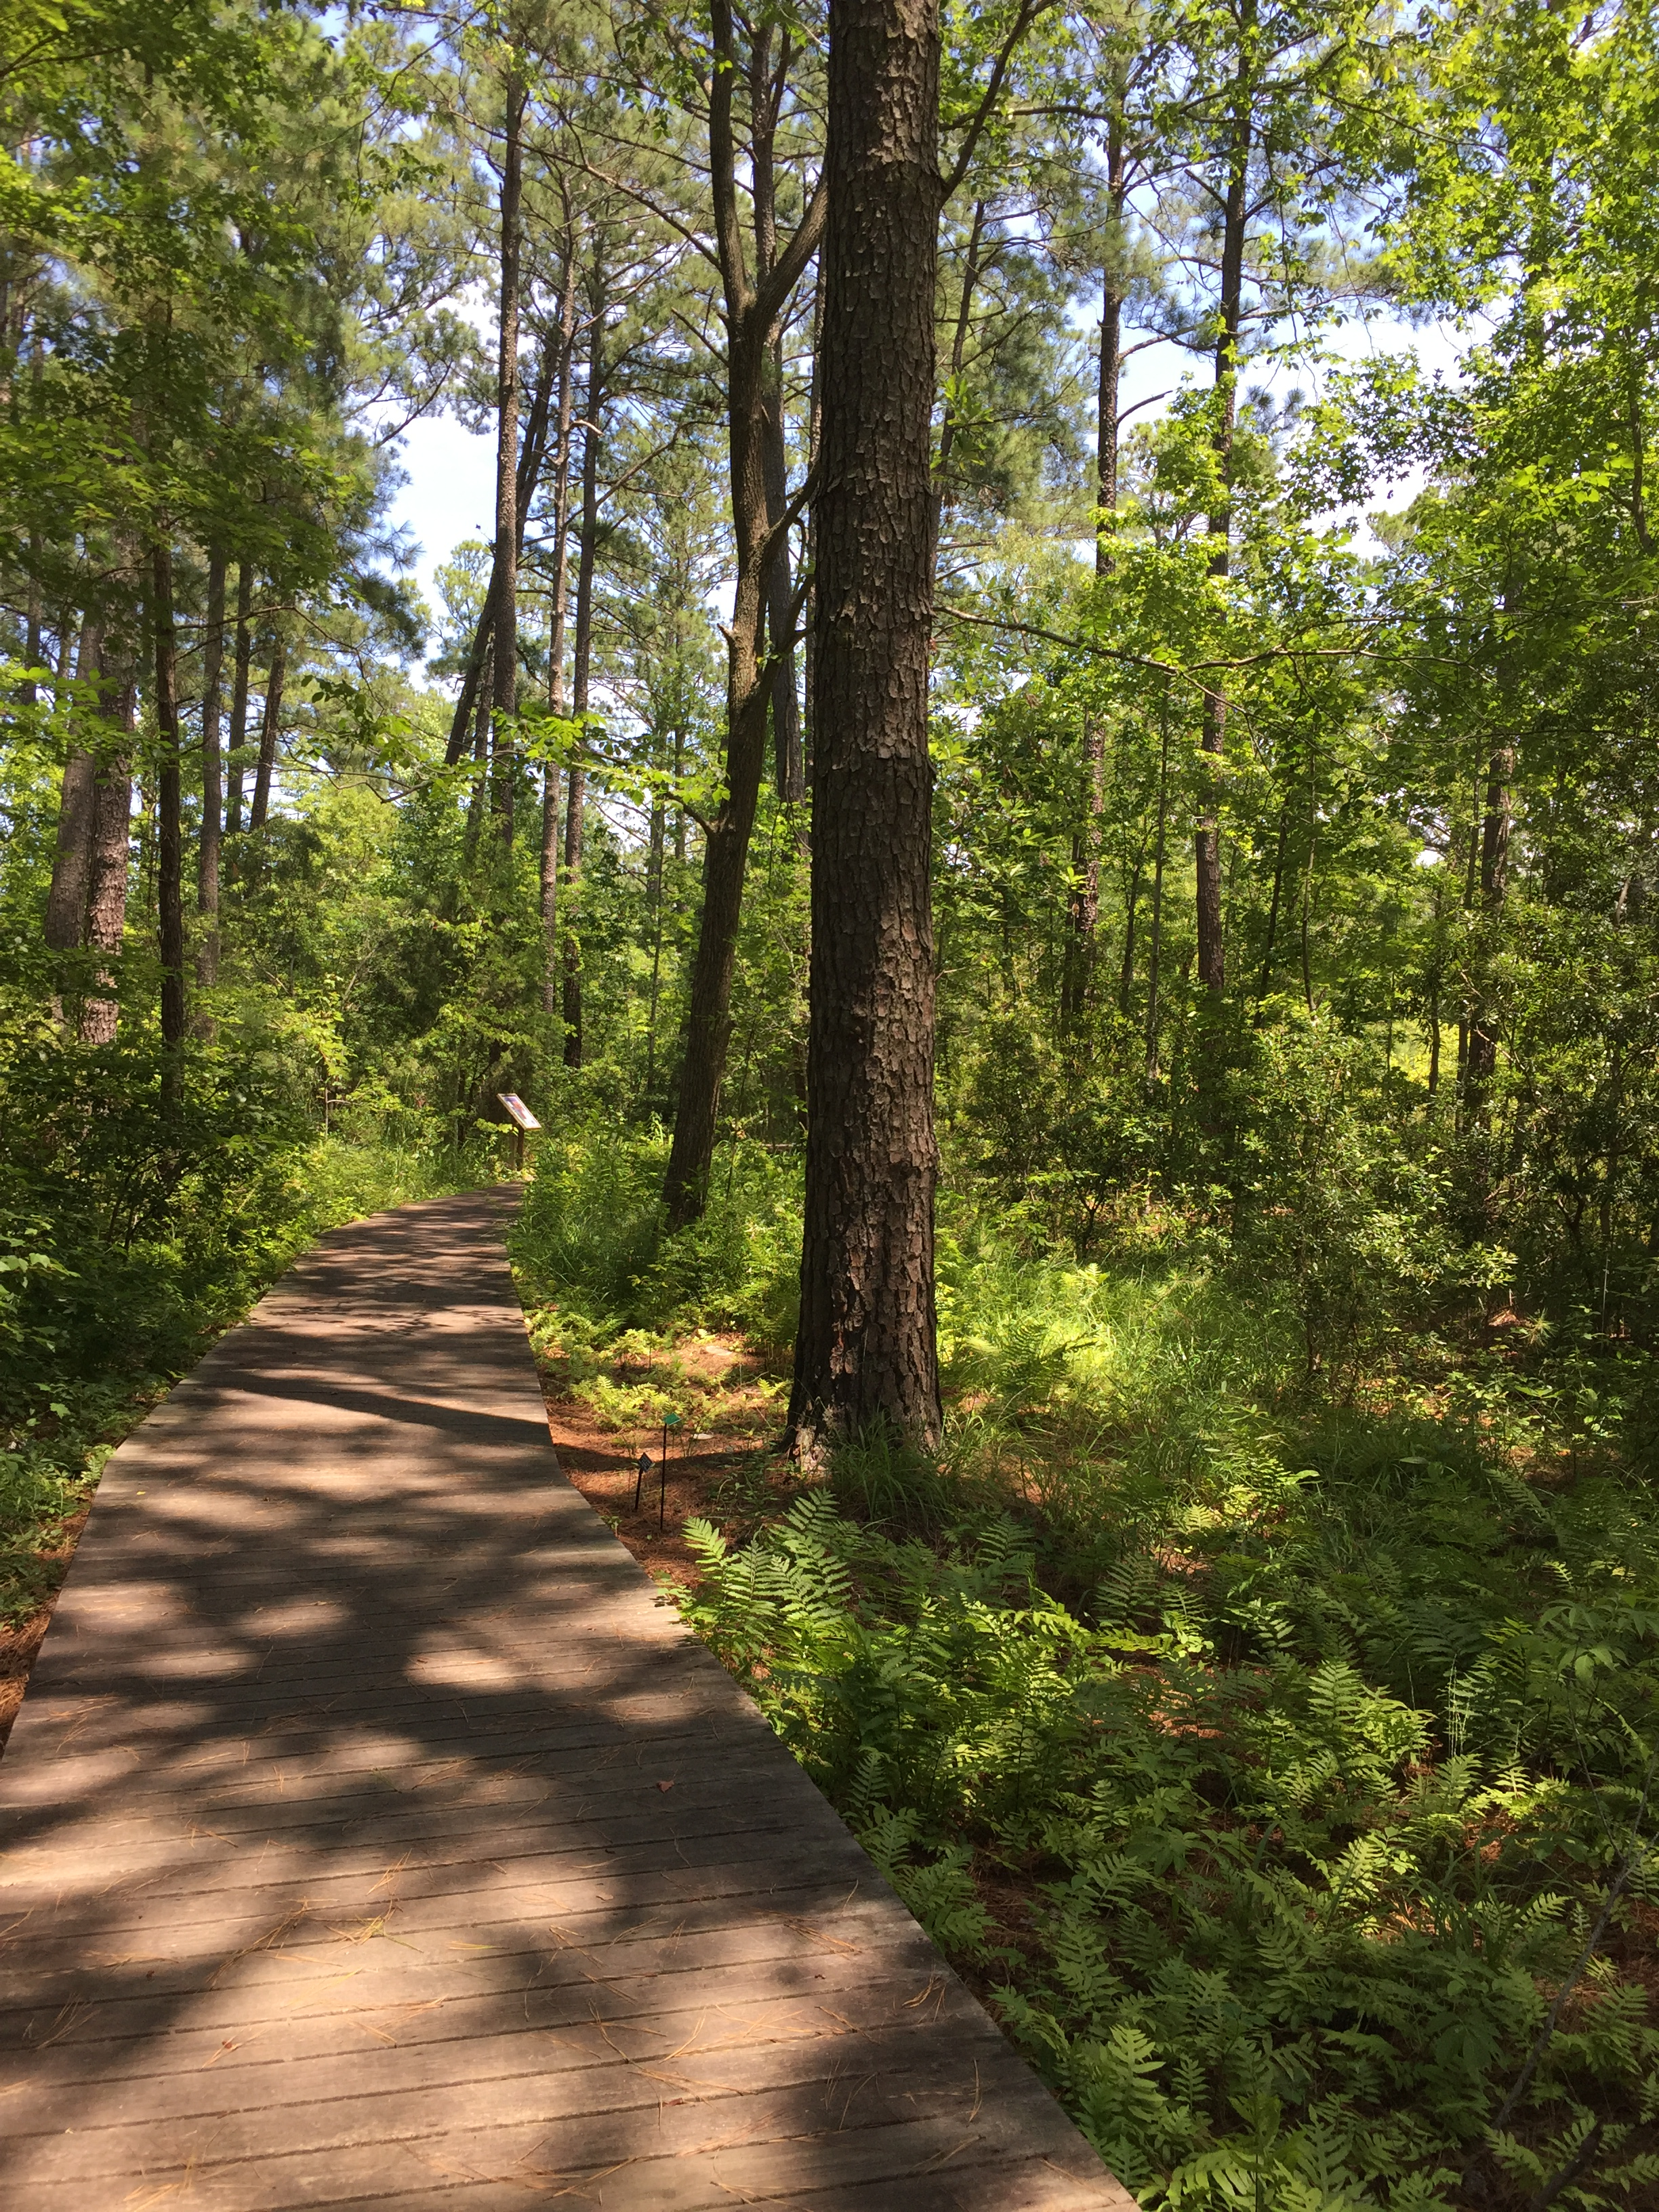 A boardwalk with educational signage introduces coastal forest habitats in the Virginia Native Plant Garden. Photo © 2018 Elaine Mills.